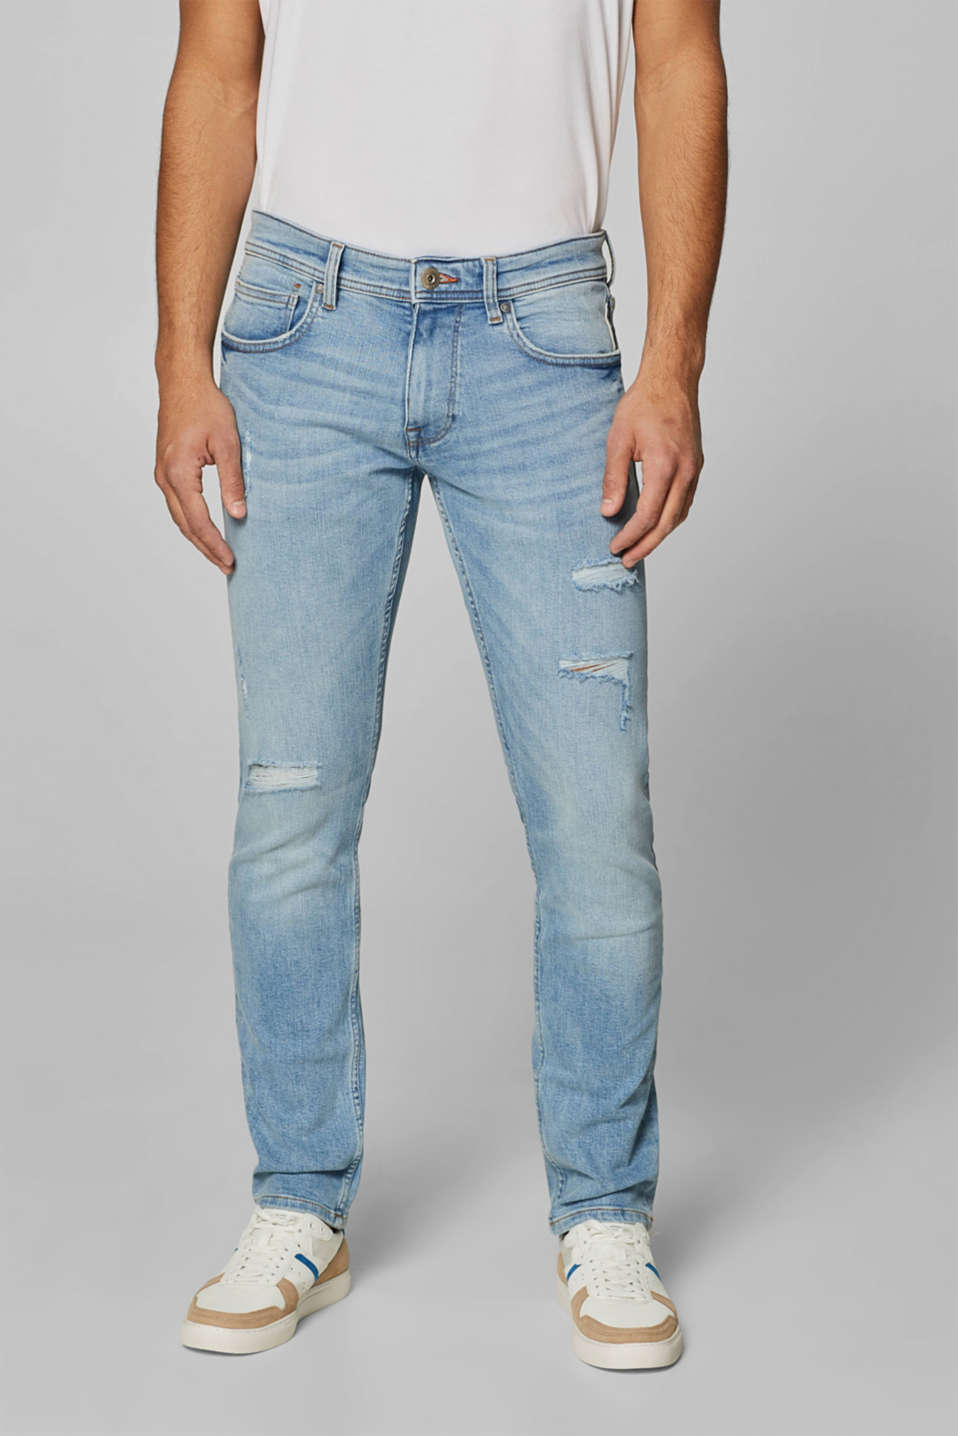 edc - Stretch jeans with distressed effects